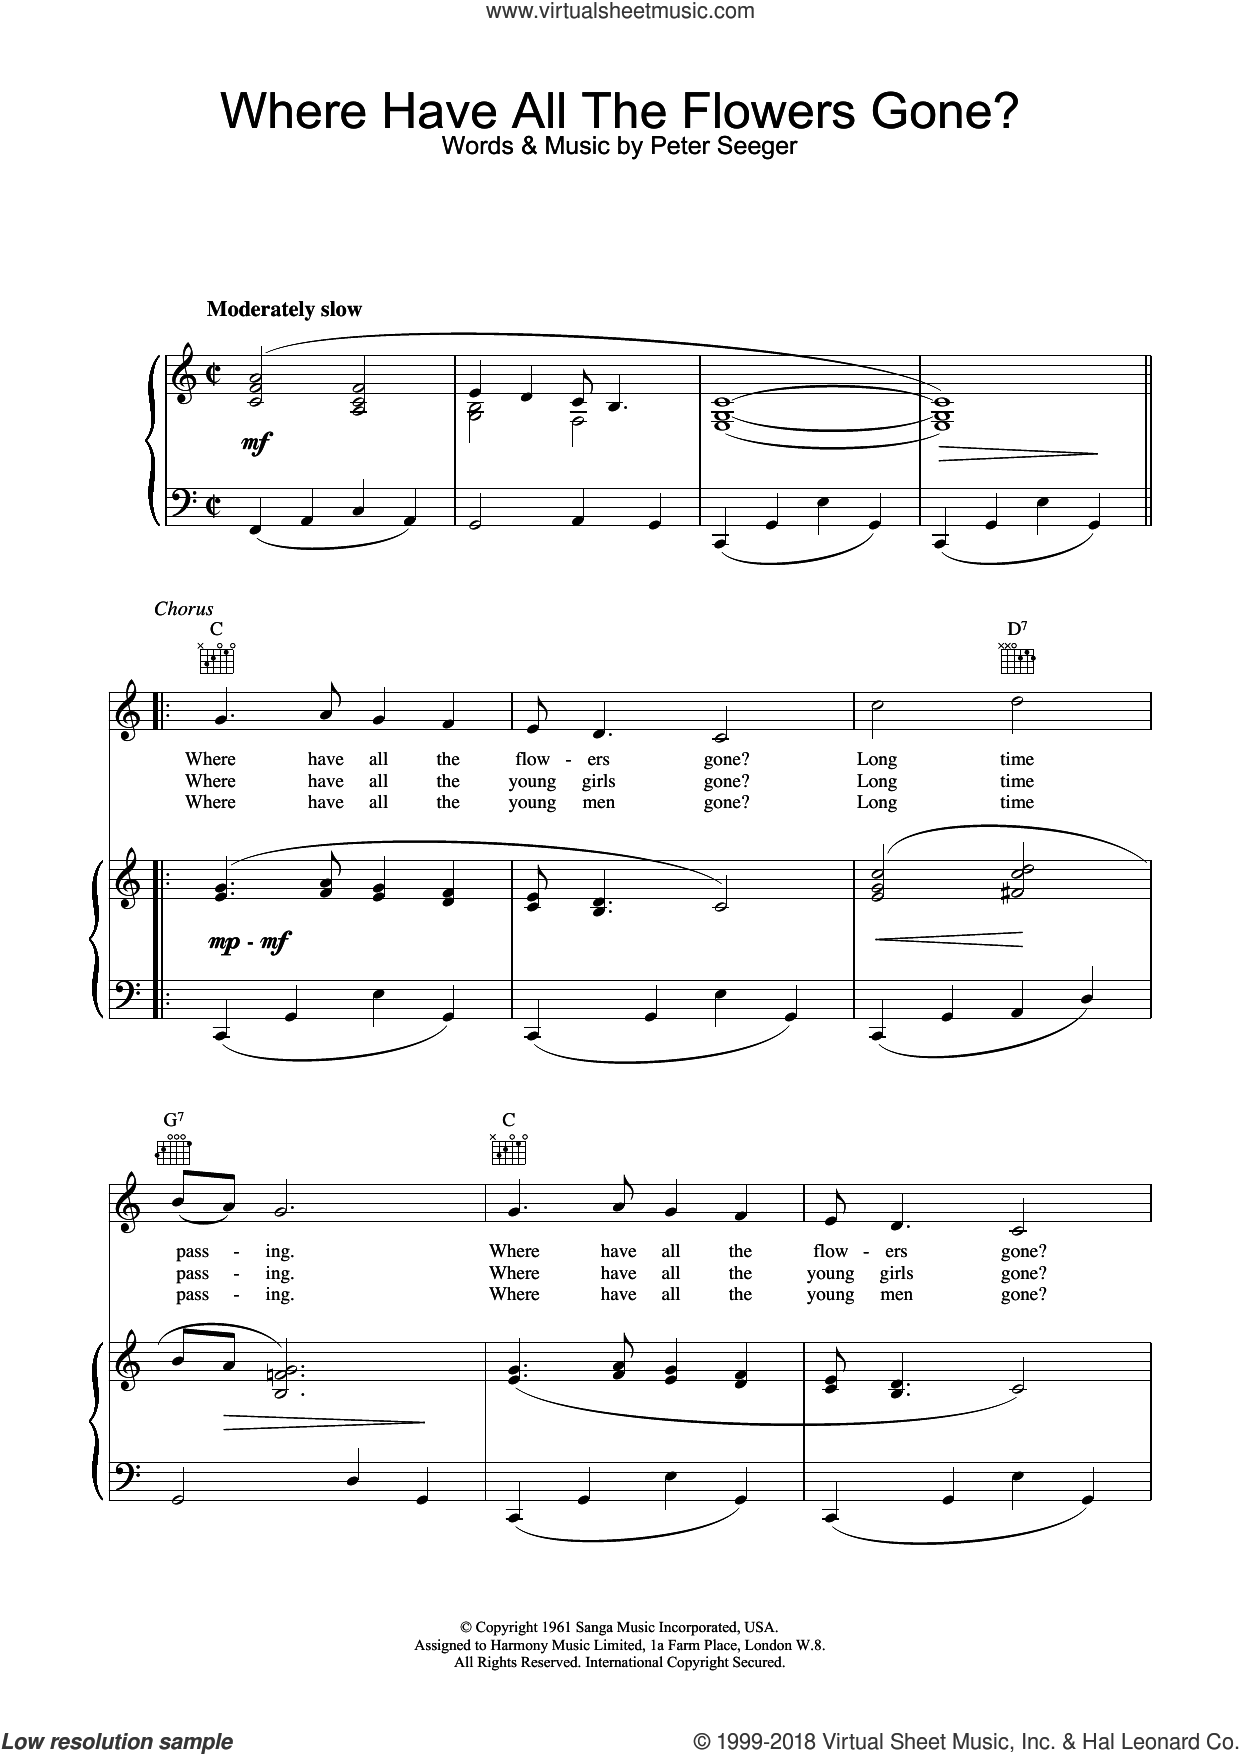 Where Have All The Flowers Gone sheet music for voice, piano or guitar by Pete Seeger and Peter Seeger, intermediate skill level